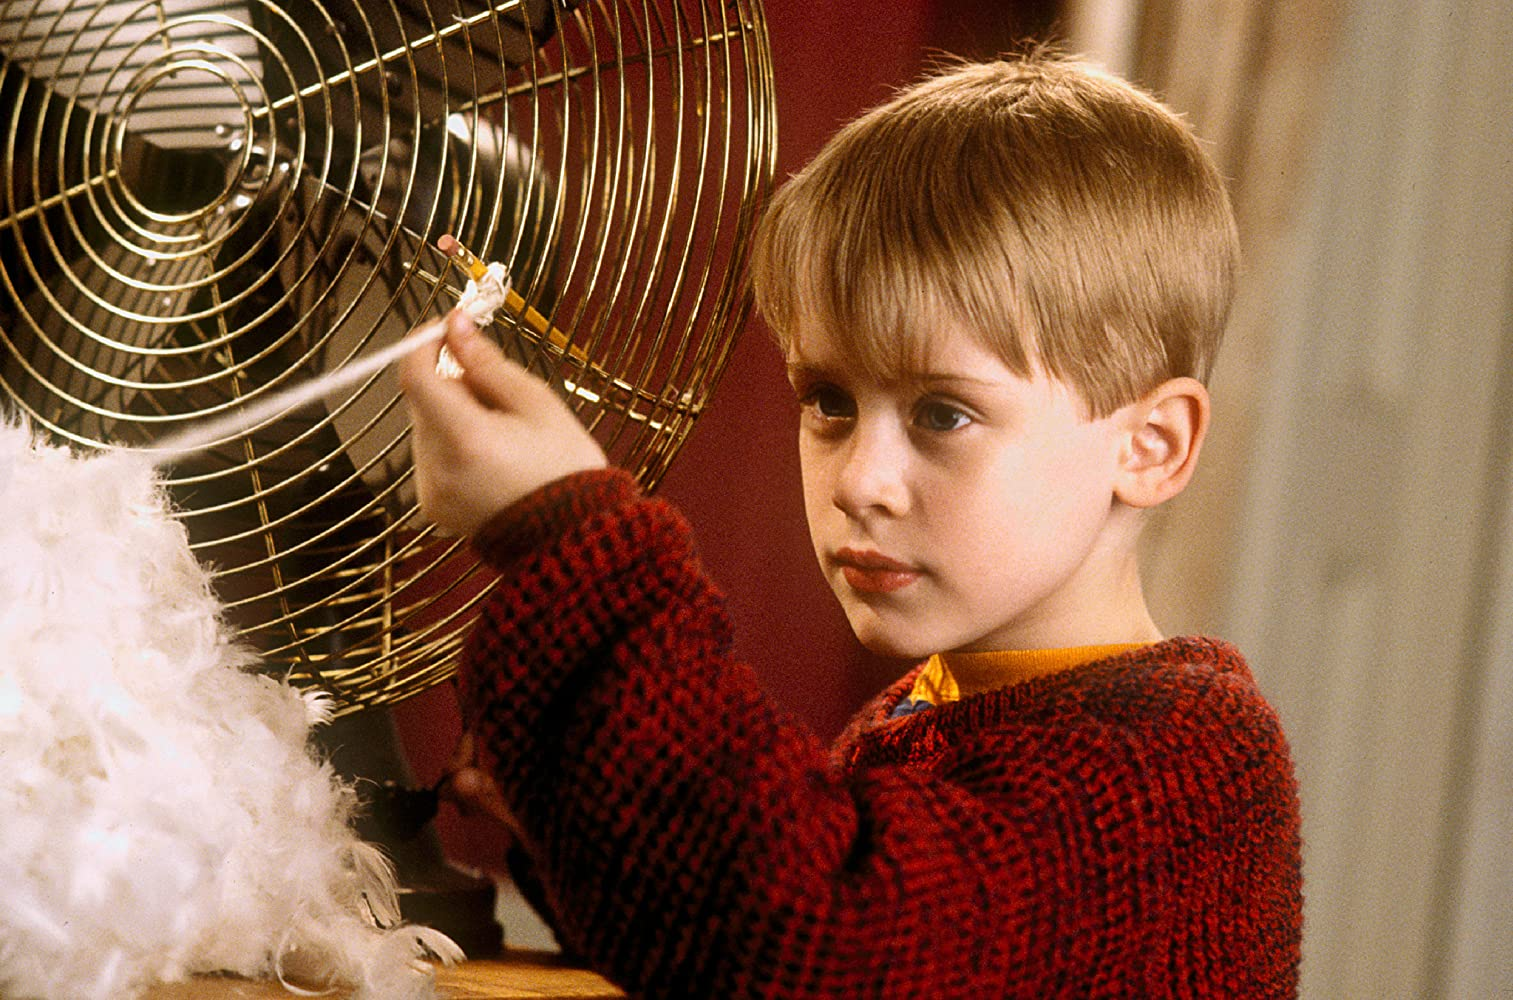 Macaulay Culkin in Home Alone (1990)